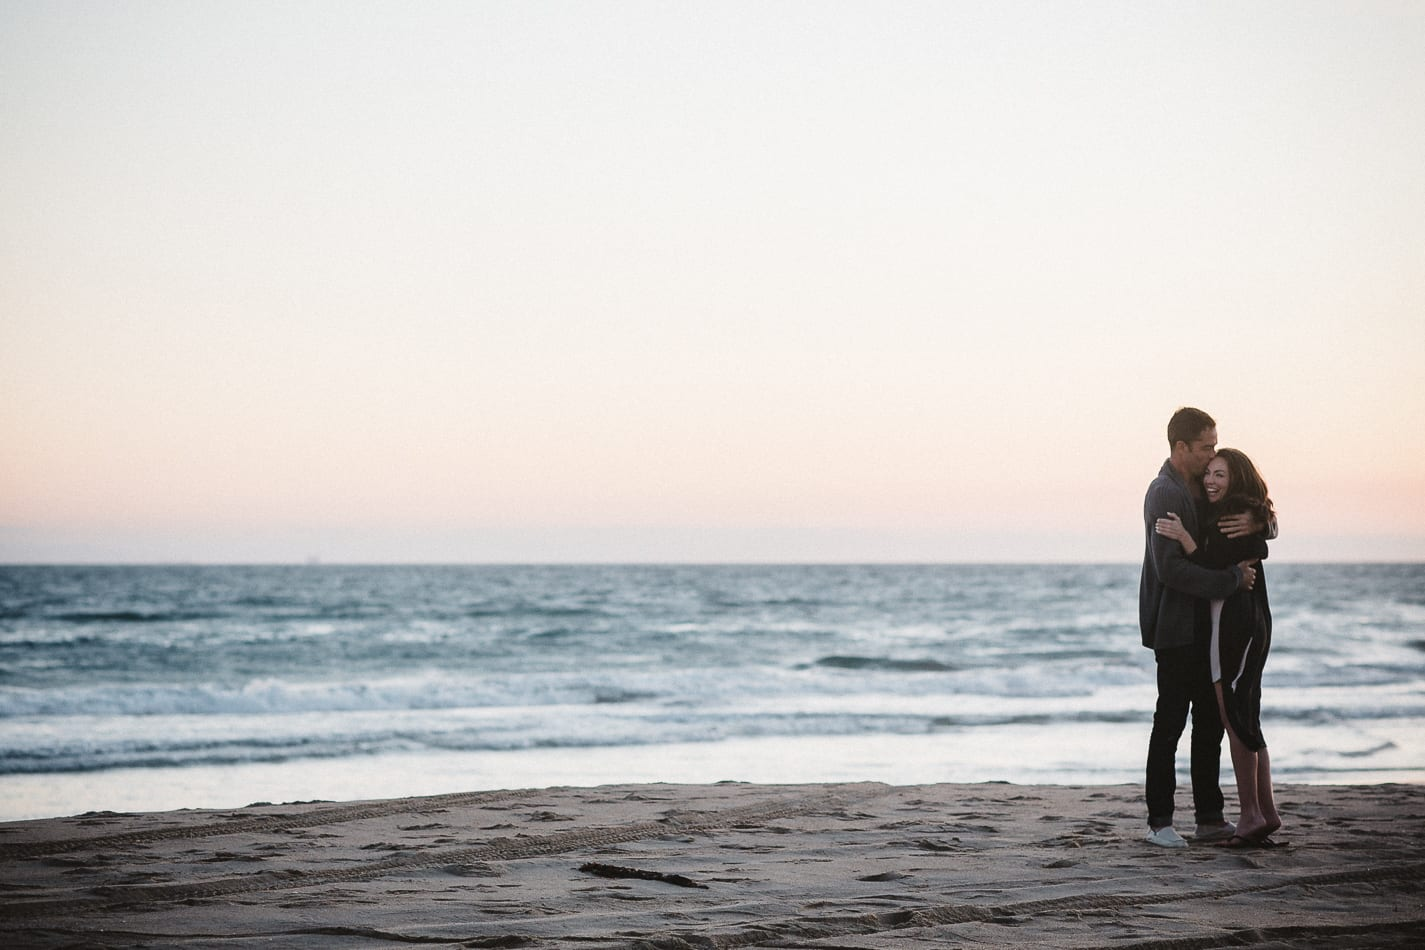 jason-alyssa-huntington-beach-california-engagement-photographer-30